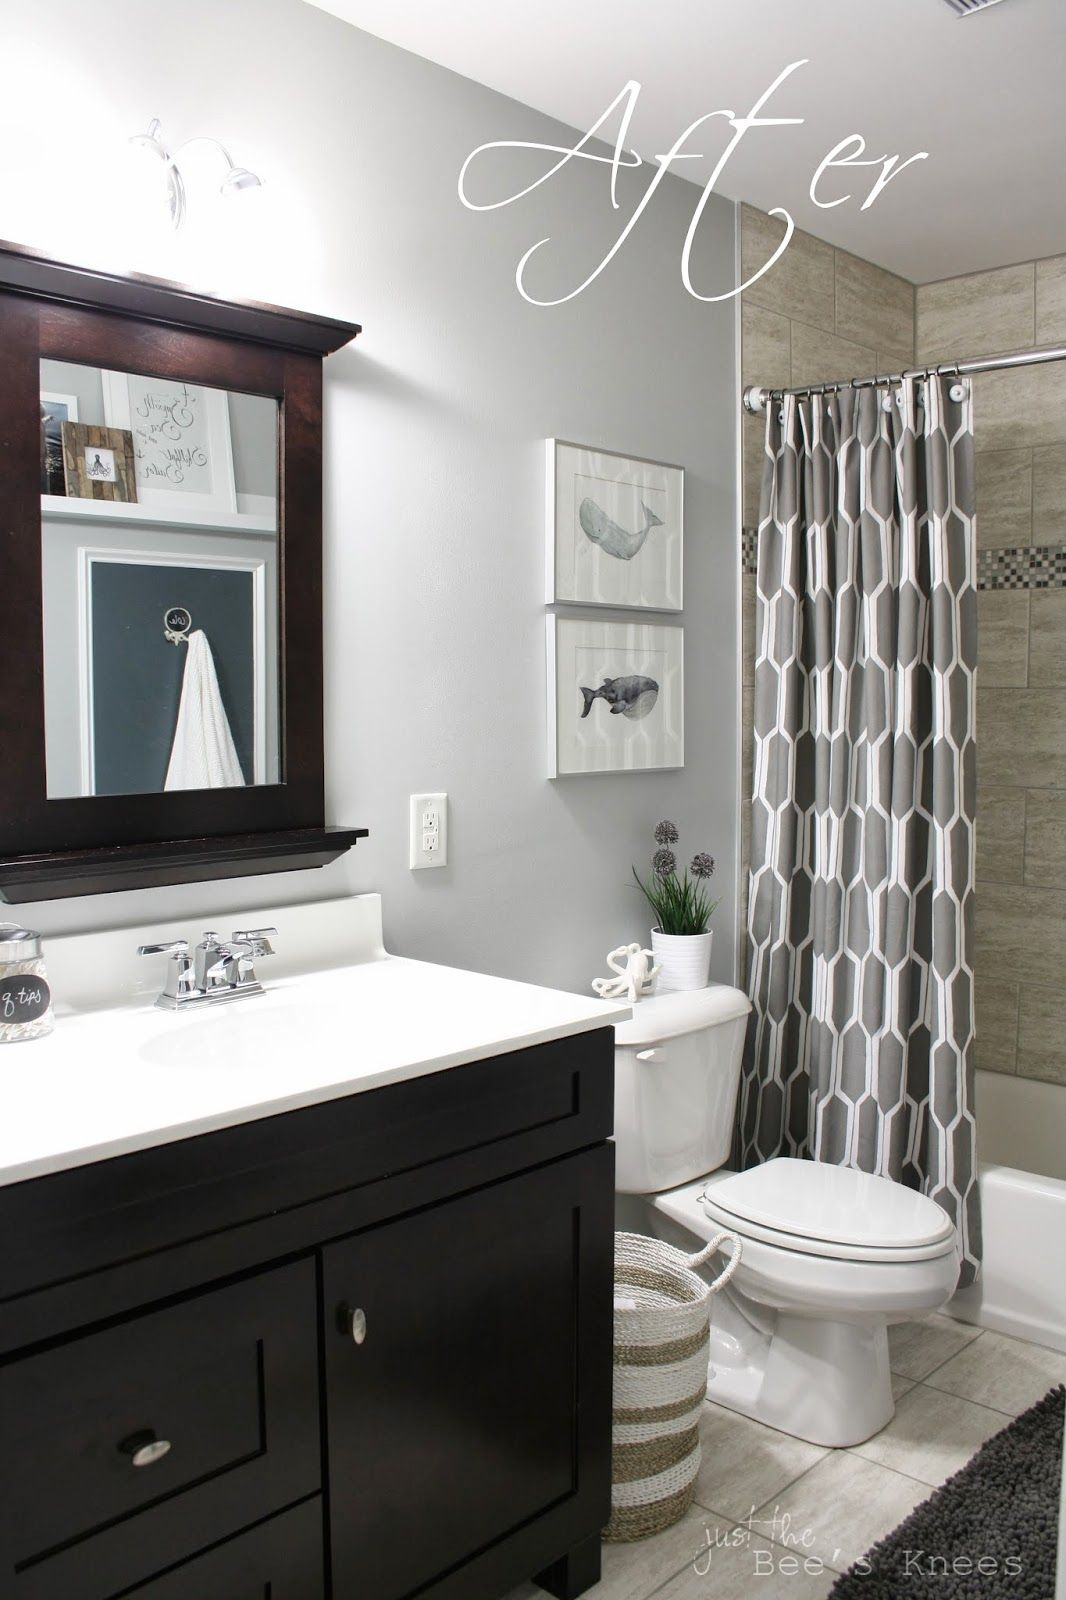 Sherwin williams popular greys - Find This Pin And More On Popular Pins Like Wall Color Sherwin Williams